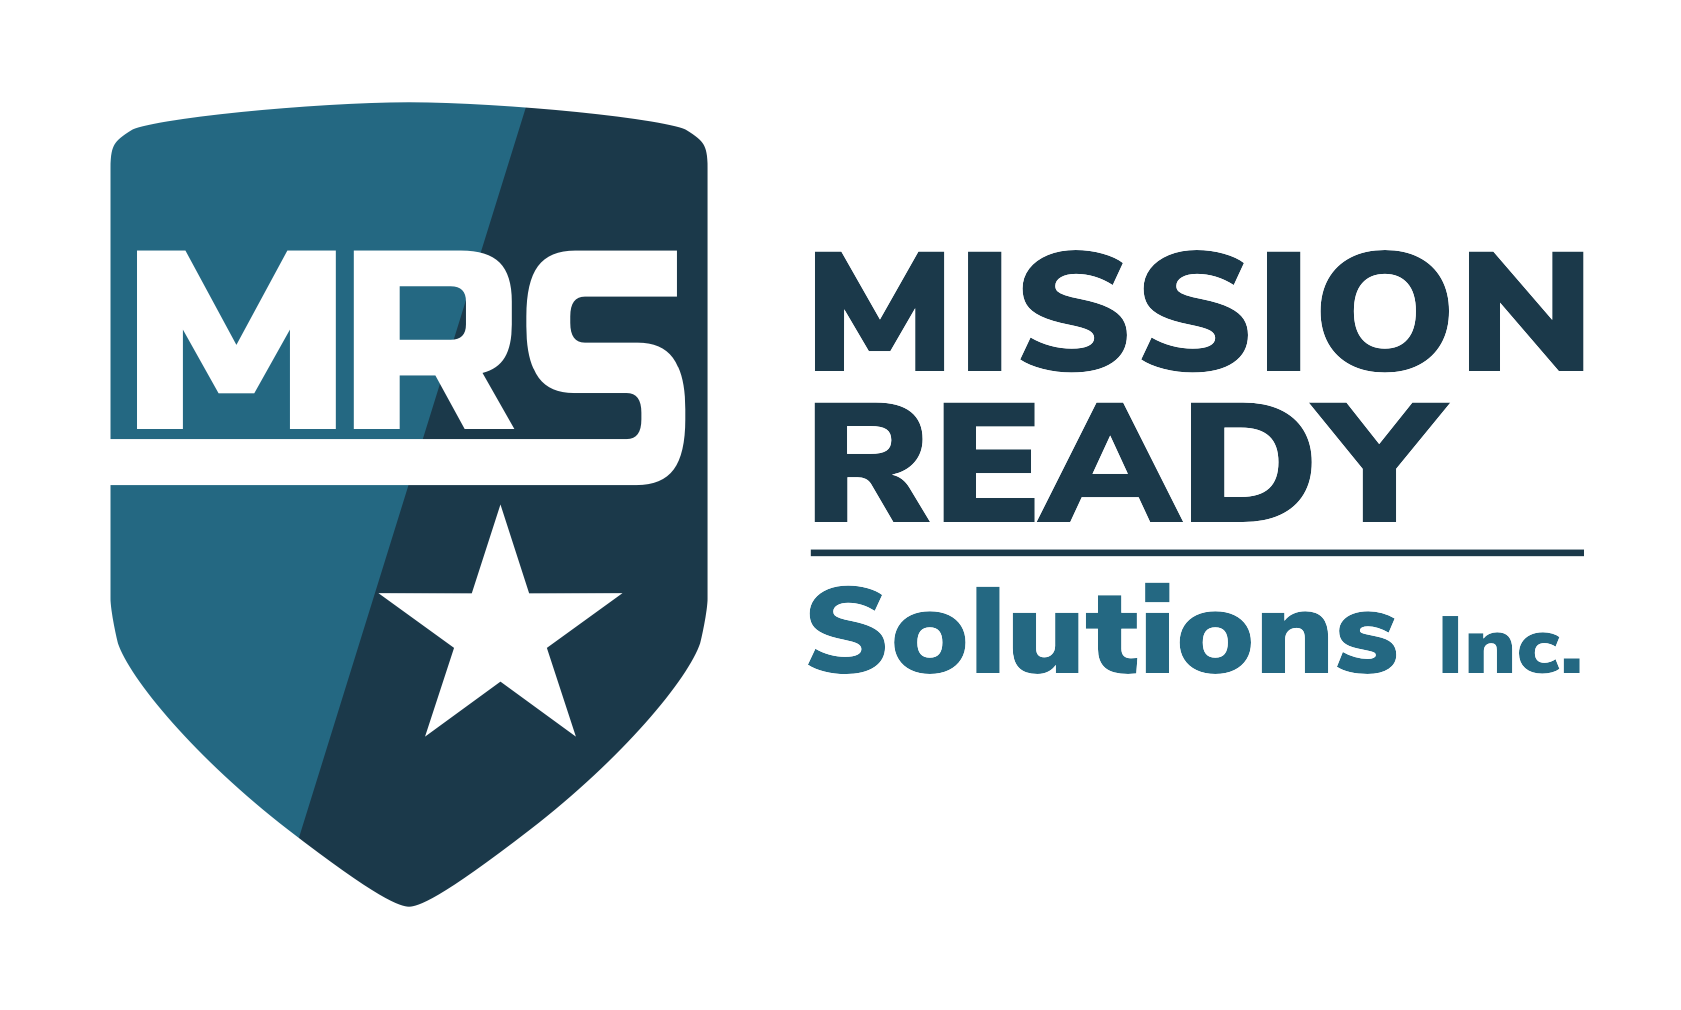 Mission Ready Appoints William J